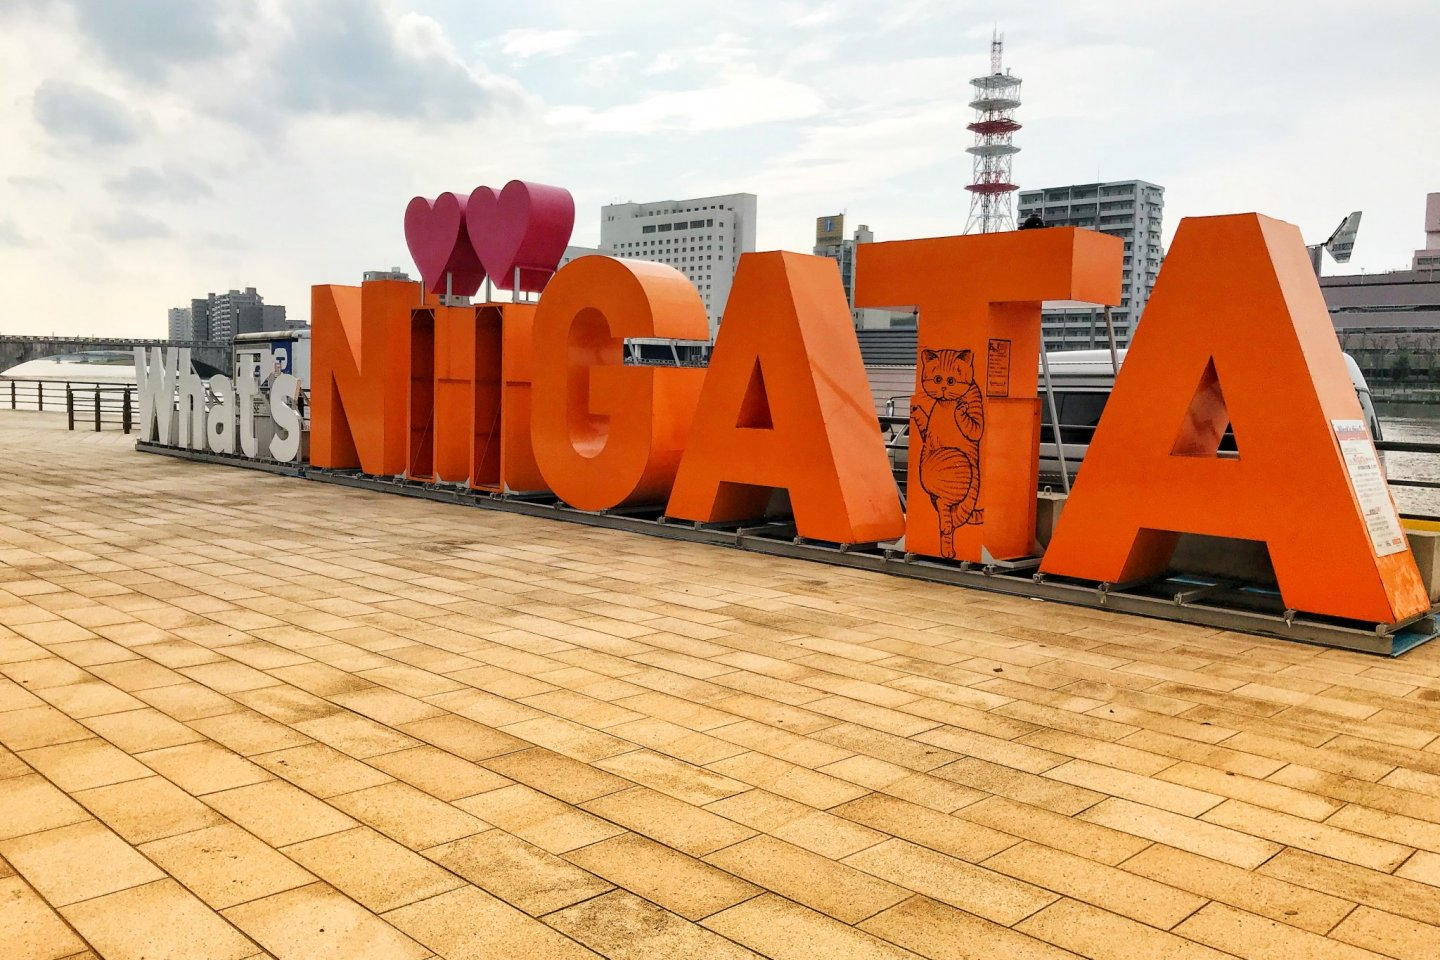 The What\'s Niigata sign is a fun photo opportunity in the city